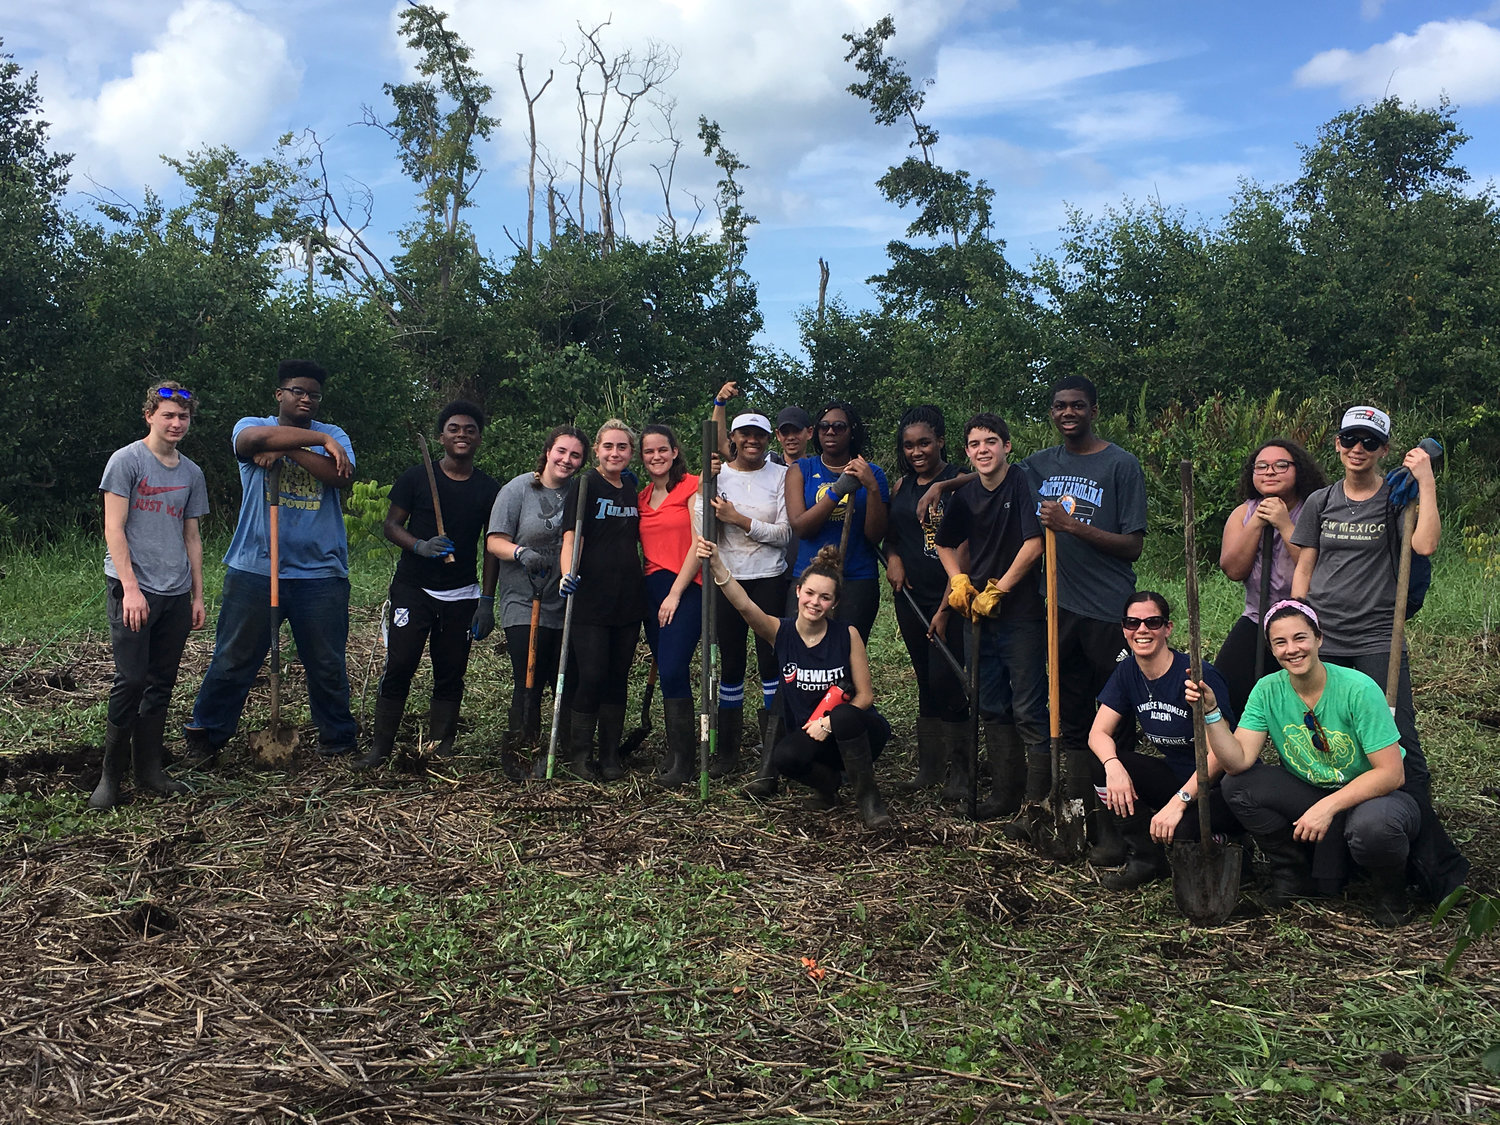 Thirteen Lawrence Woodmere Academy students went to Puerto Rico on a service trip in February. From left, Cooper Sanders, Tyler Haynes, Carlex Villier, Allison Siegel, Lilli Albucker, Tehya Gerbino, Jamila Thompson, local guide Ramon Gonzalez, Jaiden Fox, Kyra Milford, Harrison Schwartz, Cordell Neely, Erica Martinelli, Taina Perez, Angela Eatz, EF Explore America representative Katie Collins and Madison Leonard.